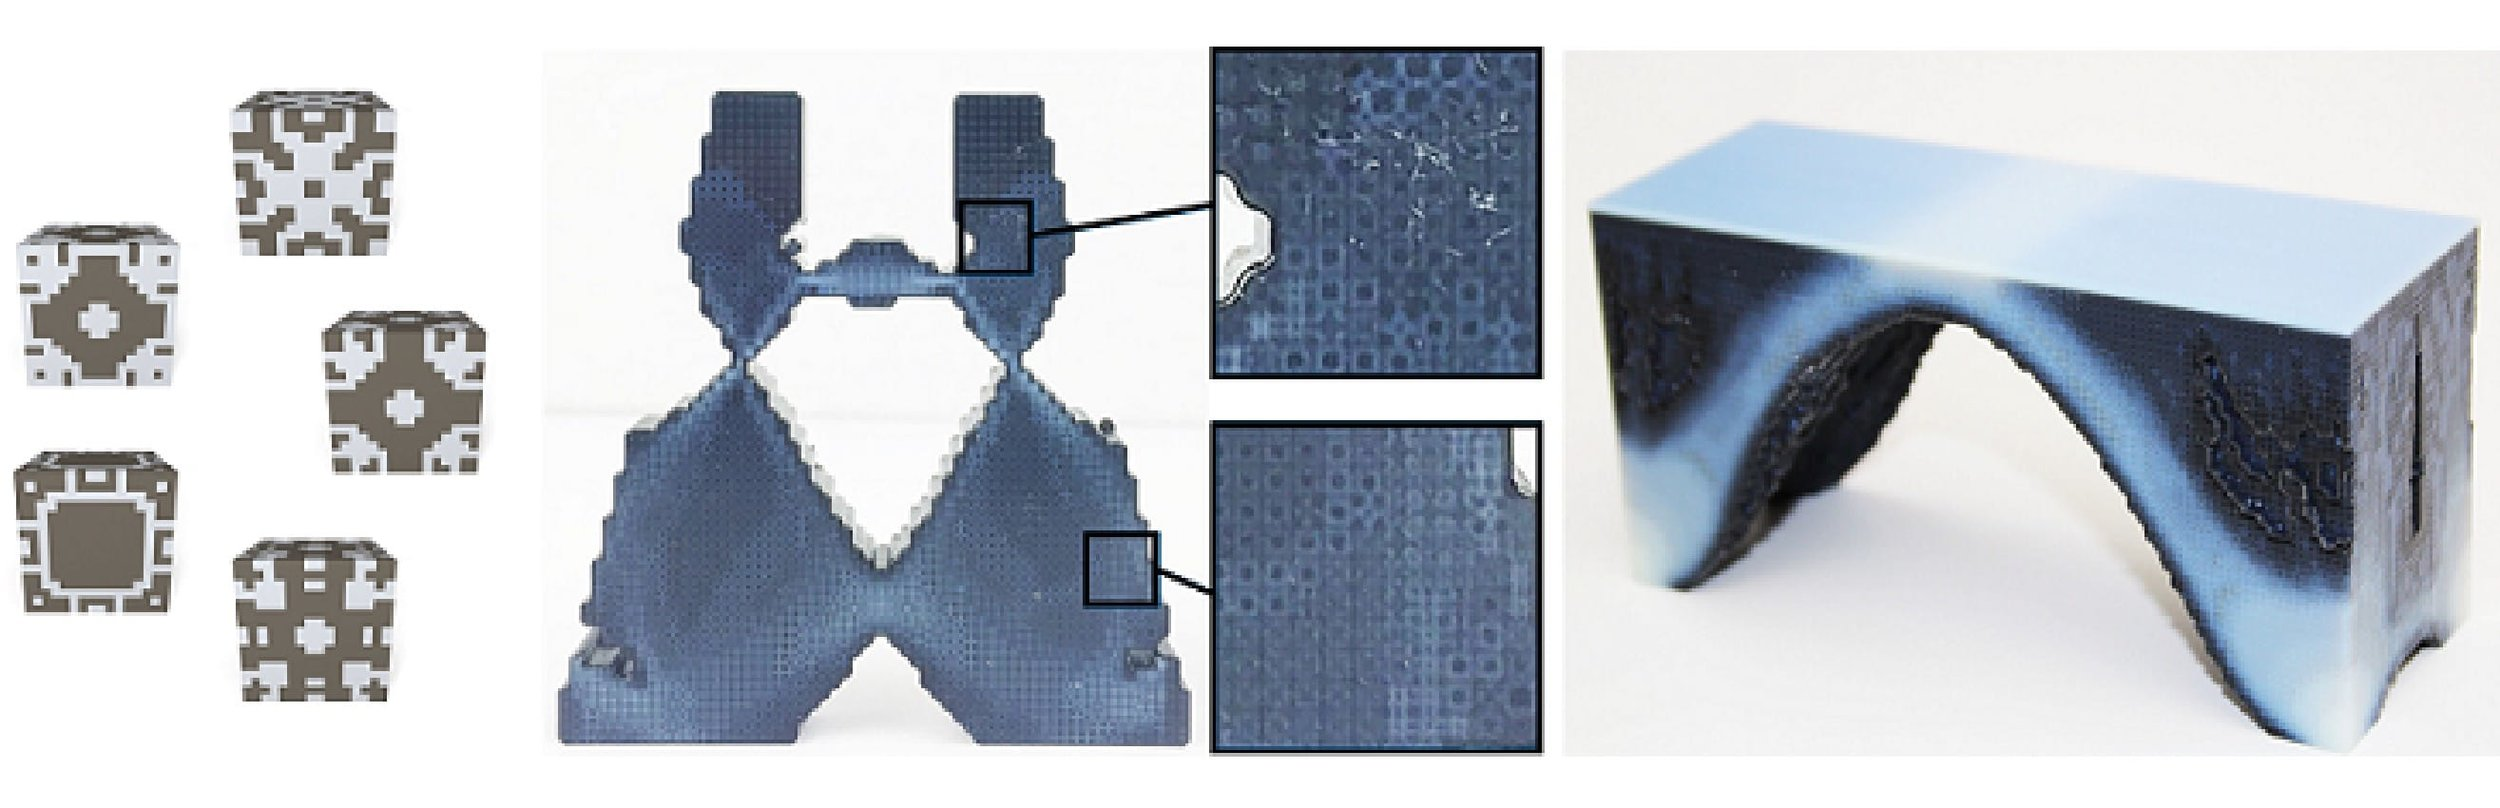 Microstructures (left) are combined together (middle) to create functional objects (right)